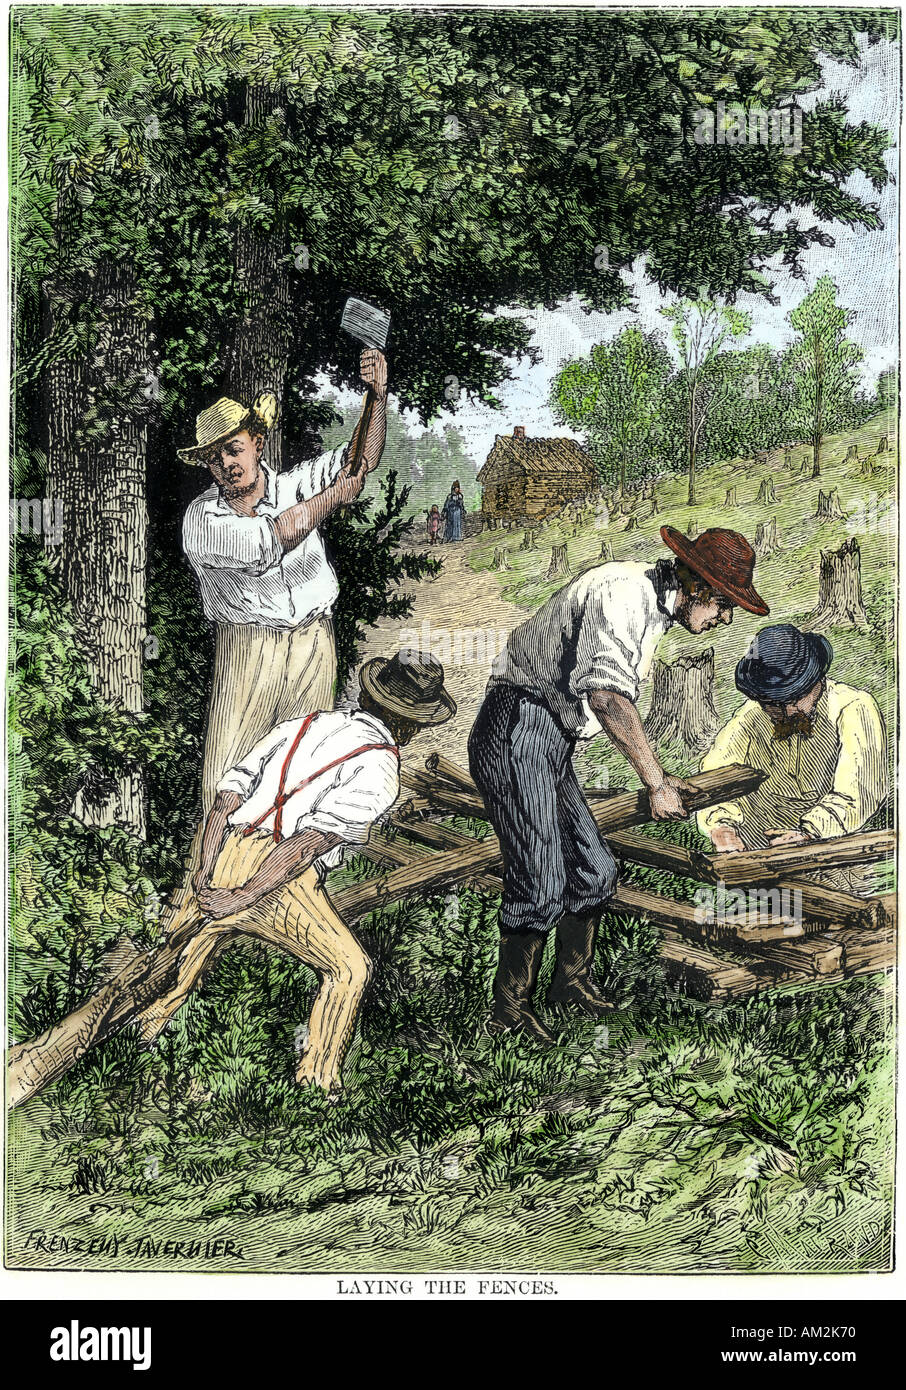 Settlers building a fence around a homestead on the frontier 1800s. Hand-colored woodcut - Stock Image